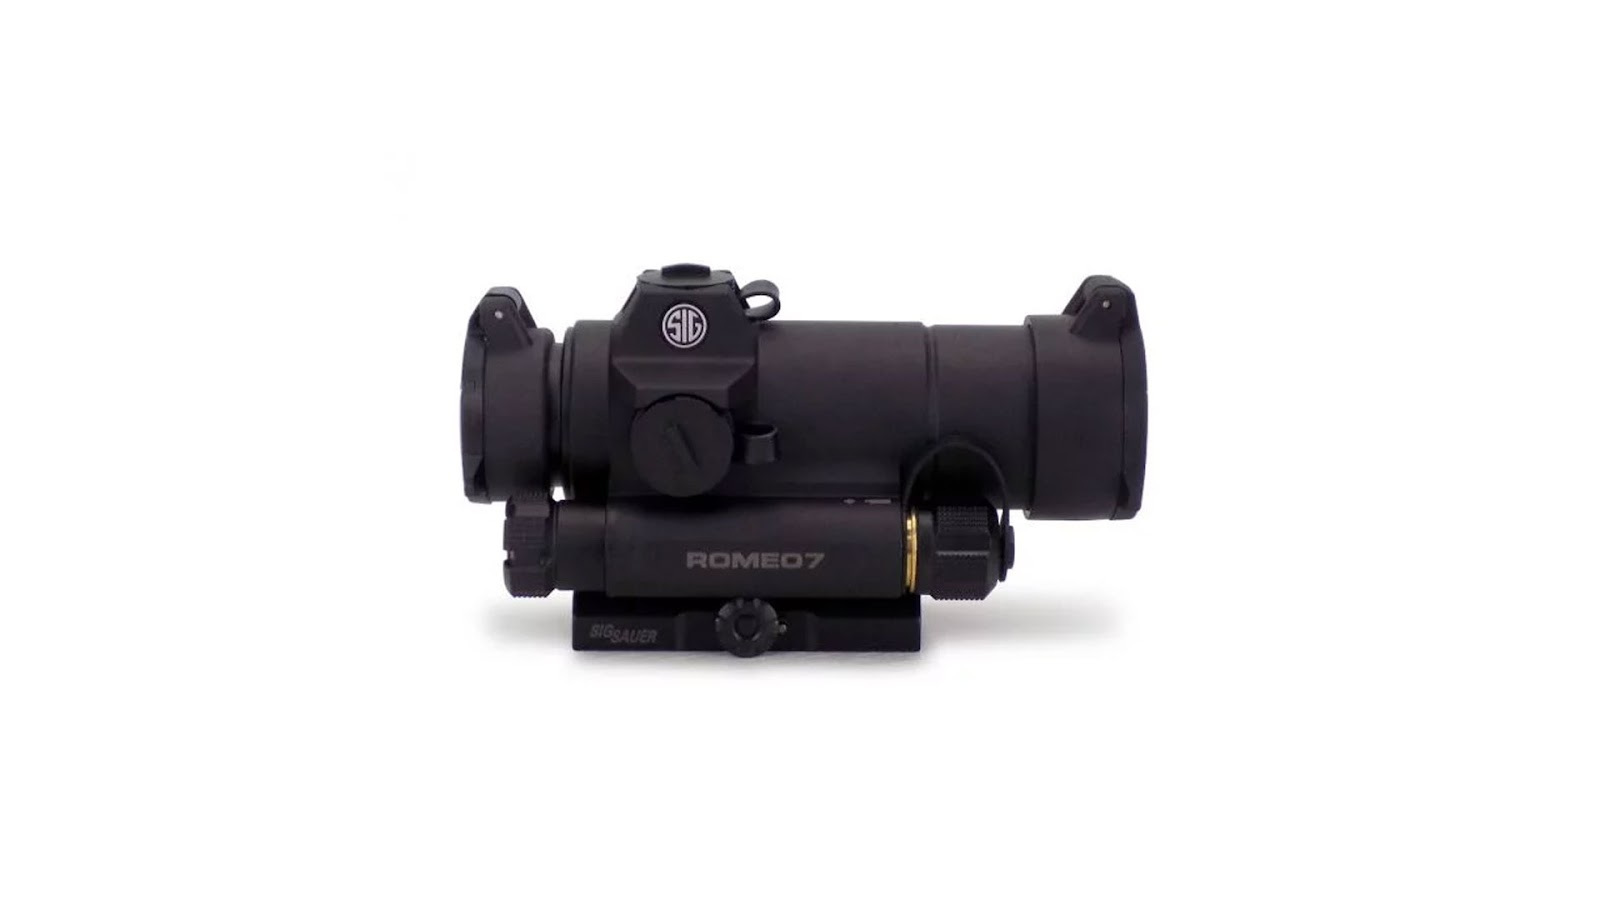 Sig Sauer ROMEO7 full-size red-dot sight